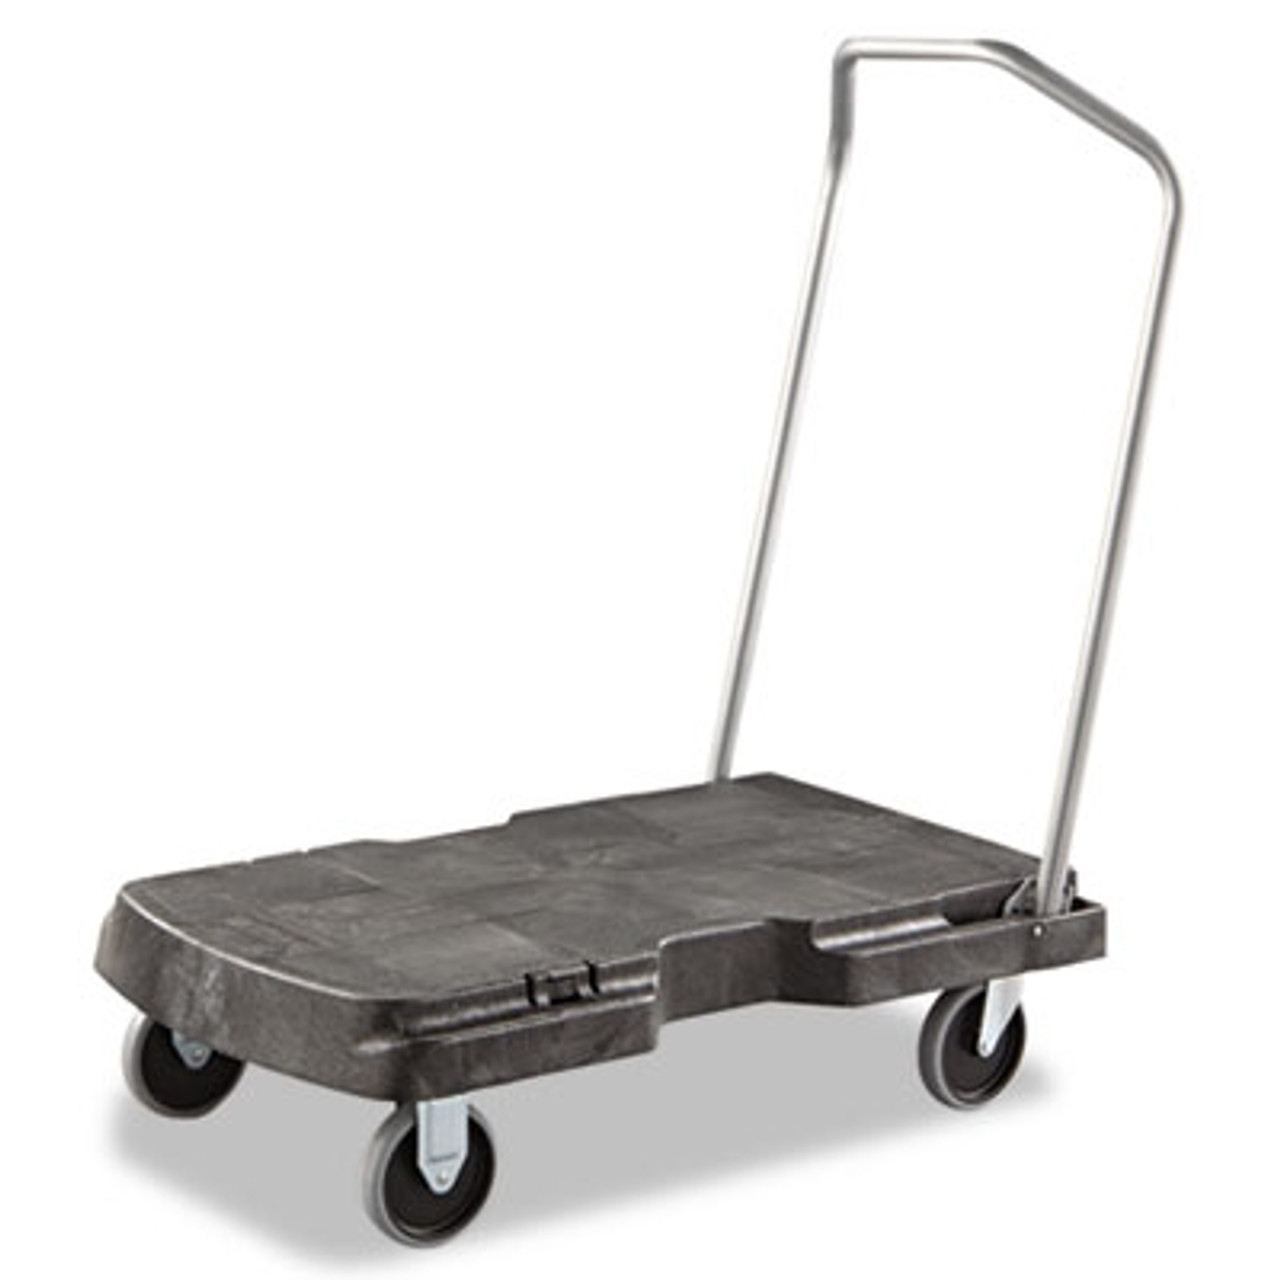 Rubbermaid Commercial Triple Trolley, 500-lb Cap., 20 1/2w x 32 1/2d x 7h, Black